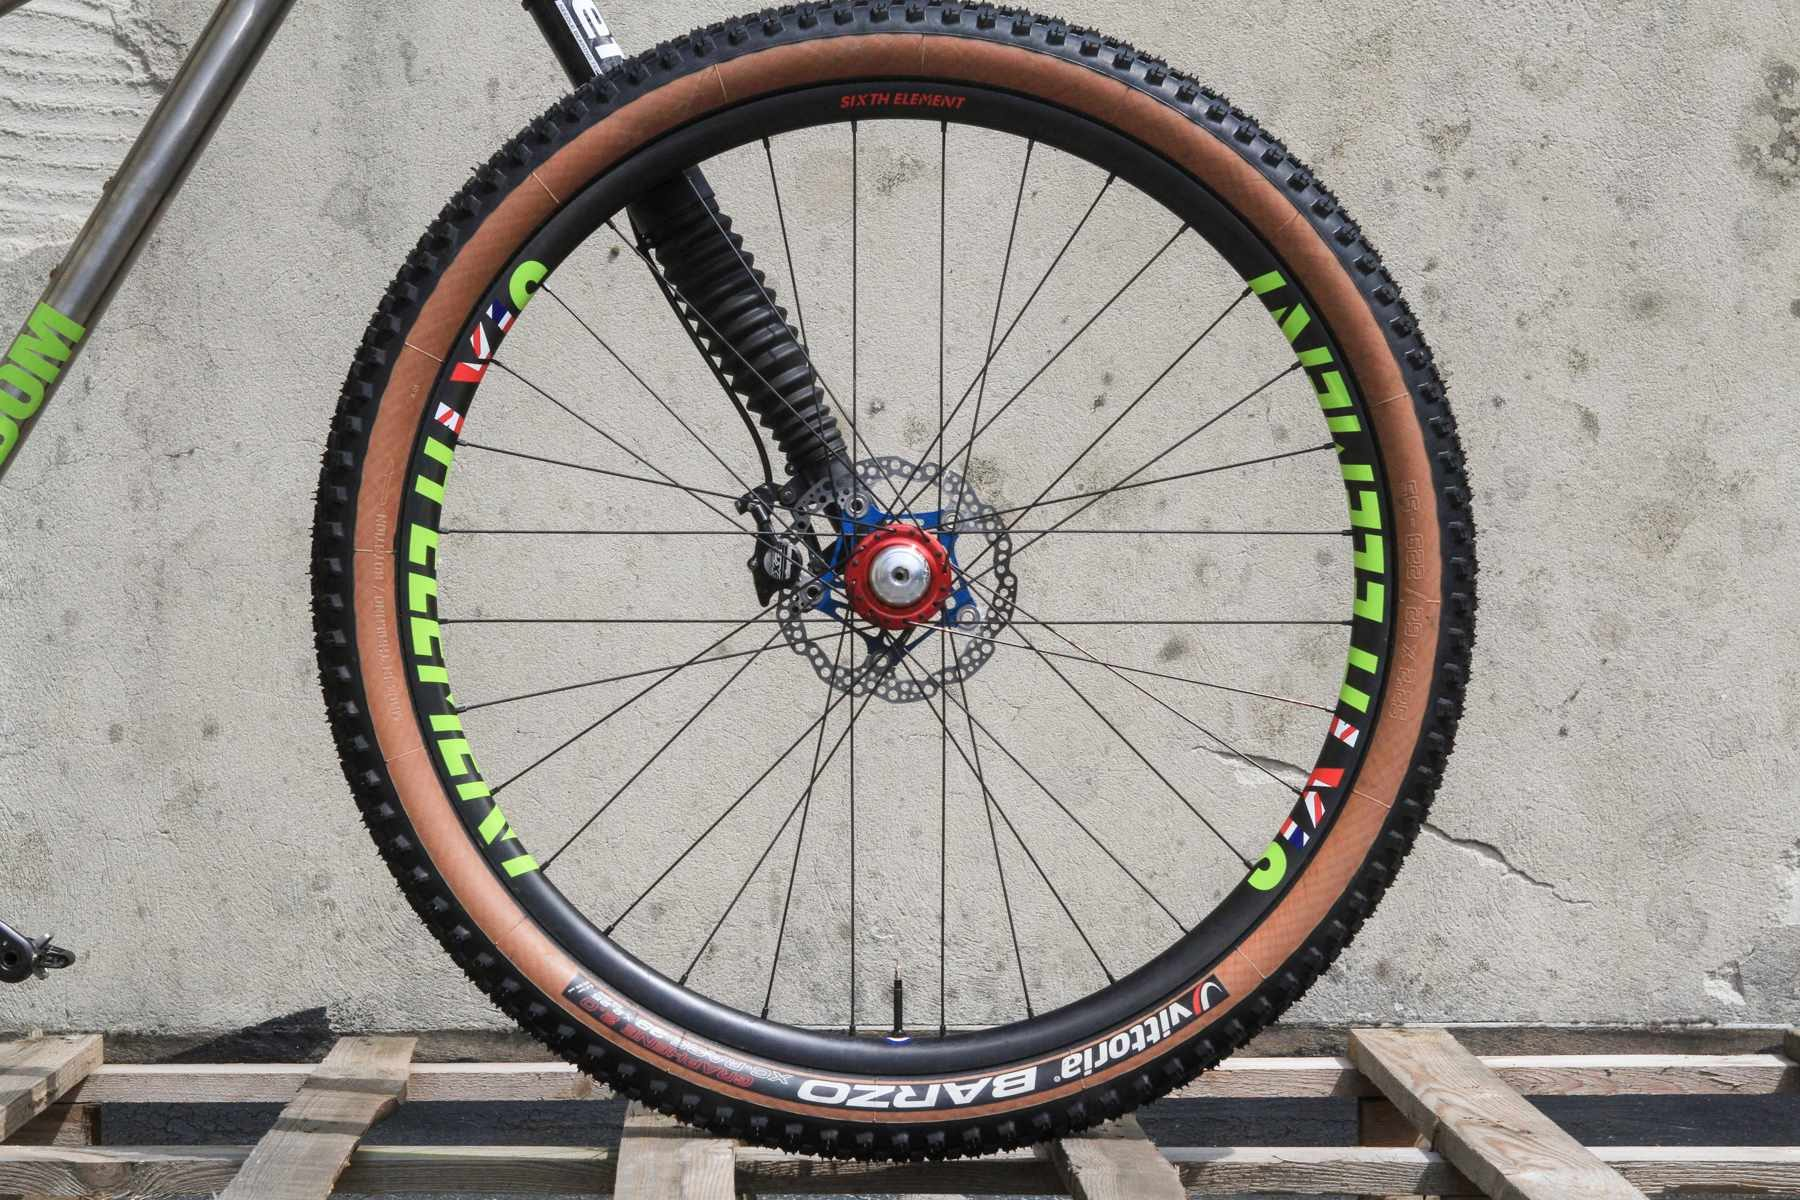 Olympic MTB wheel sixth element pro xc